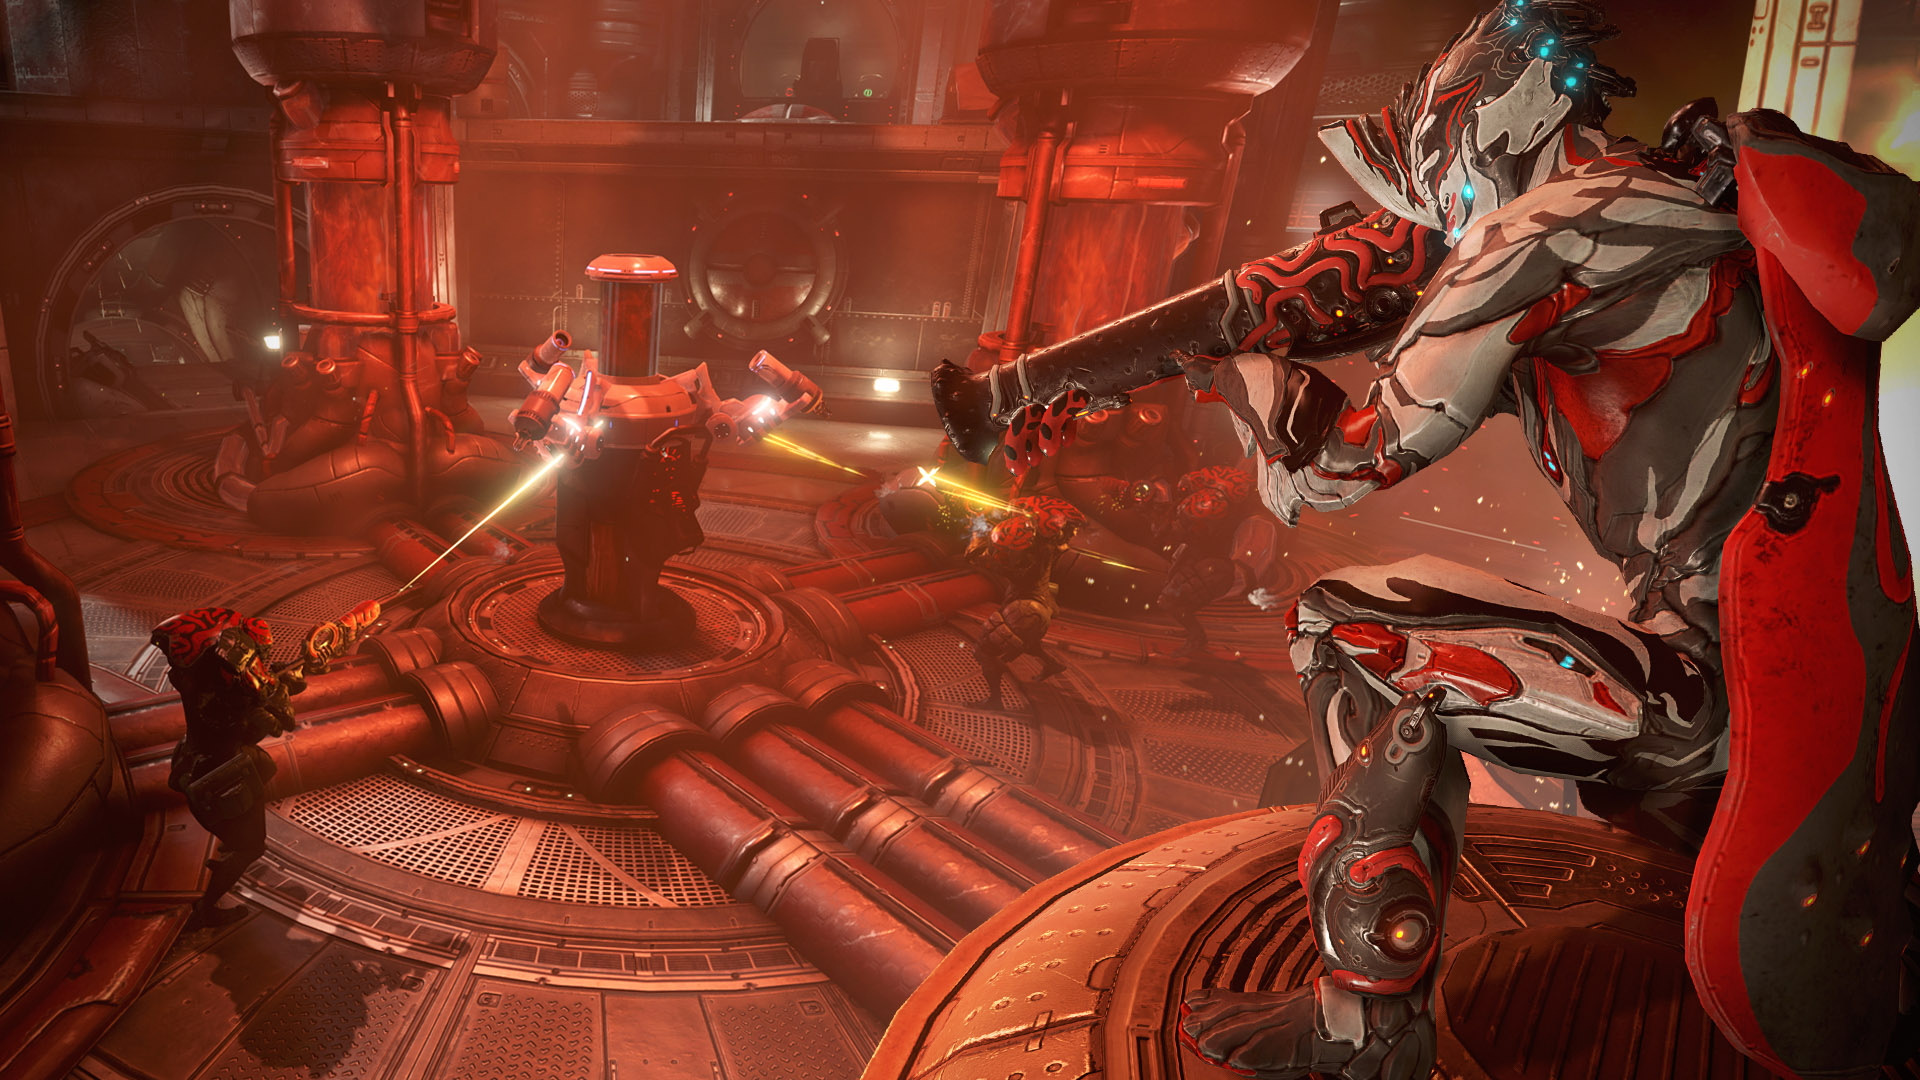 How Warframe built an ethical free-to-play economy